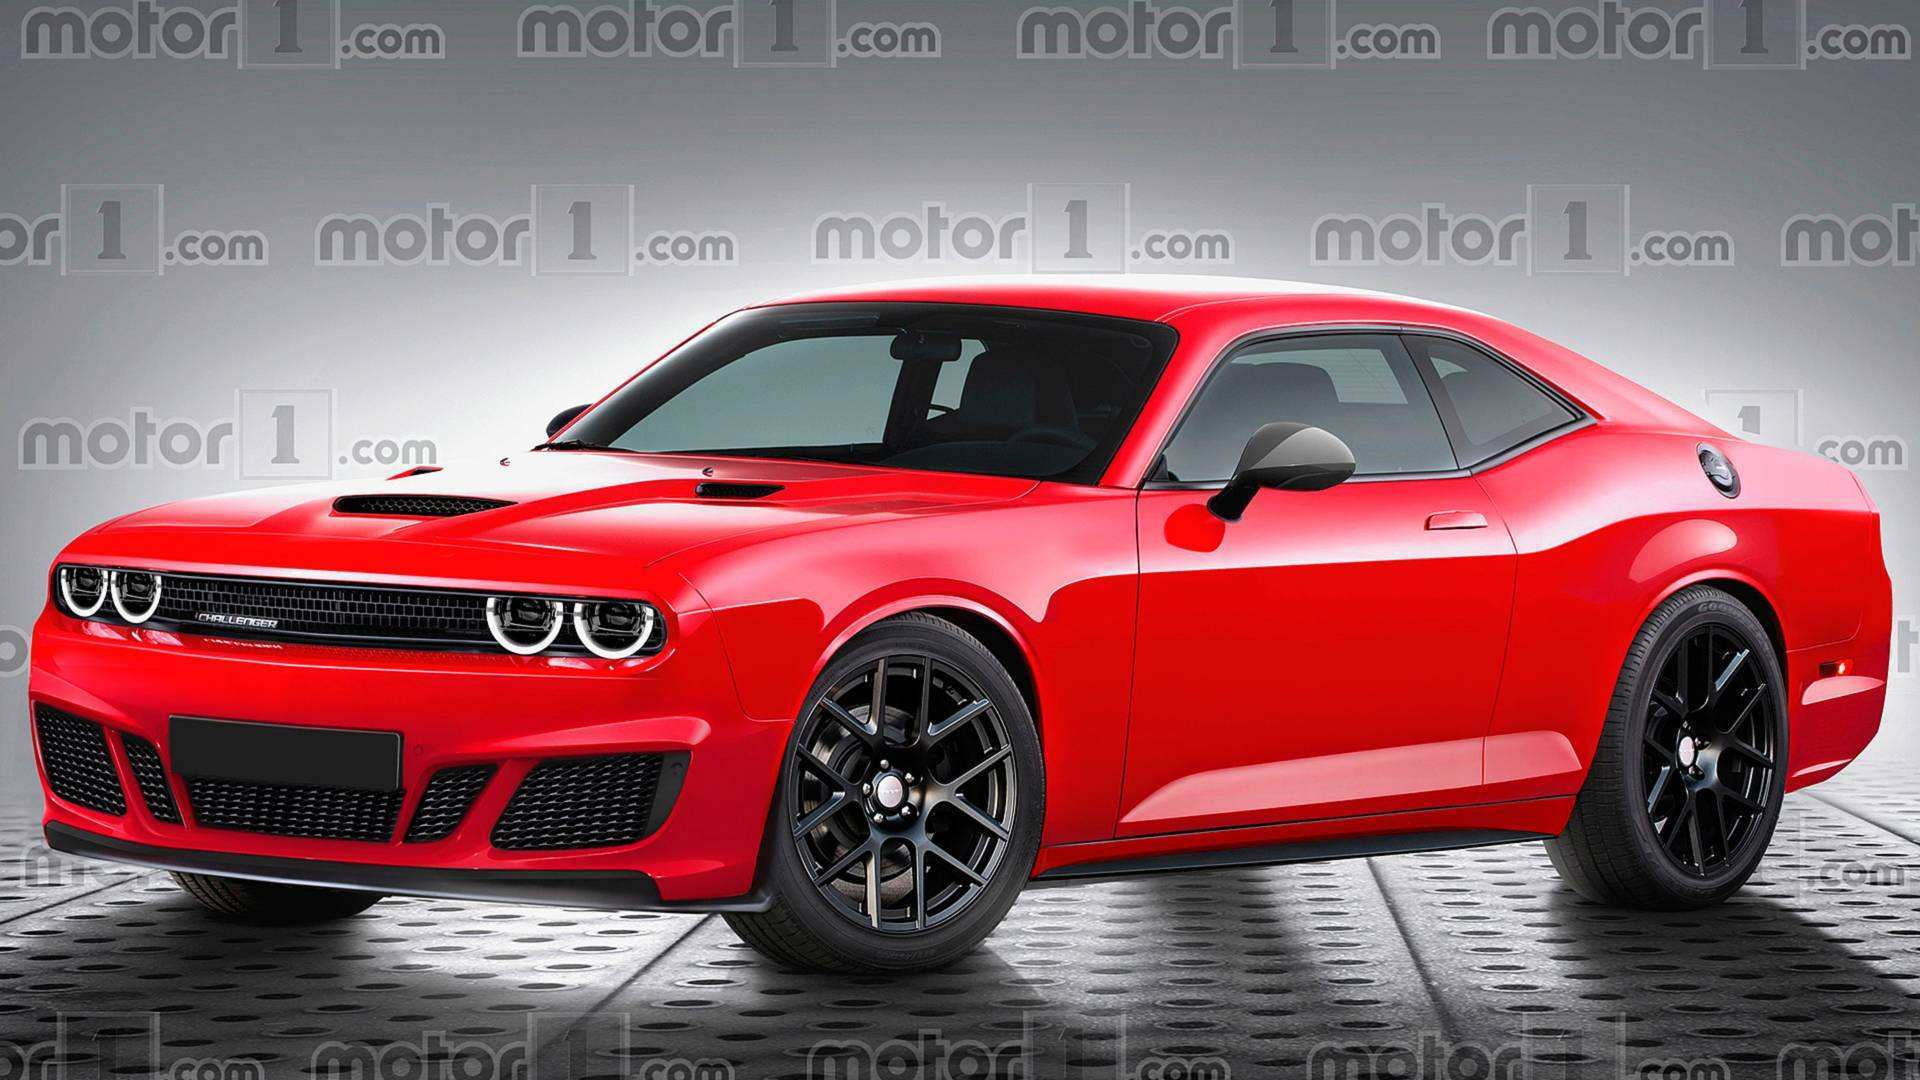 58 All New When Will The 2020 Dodge Challenger Come Out Prices by When Will The 2020 Dodge Challenger Come Out